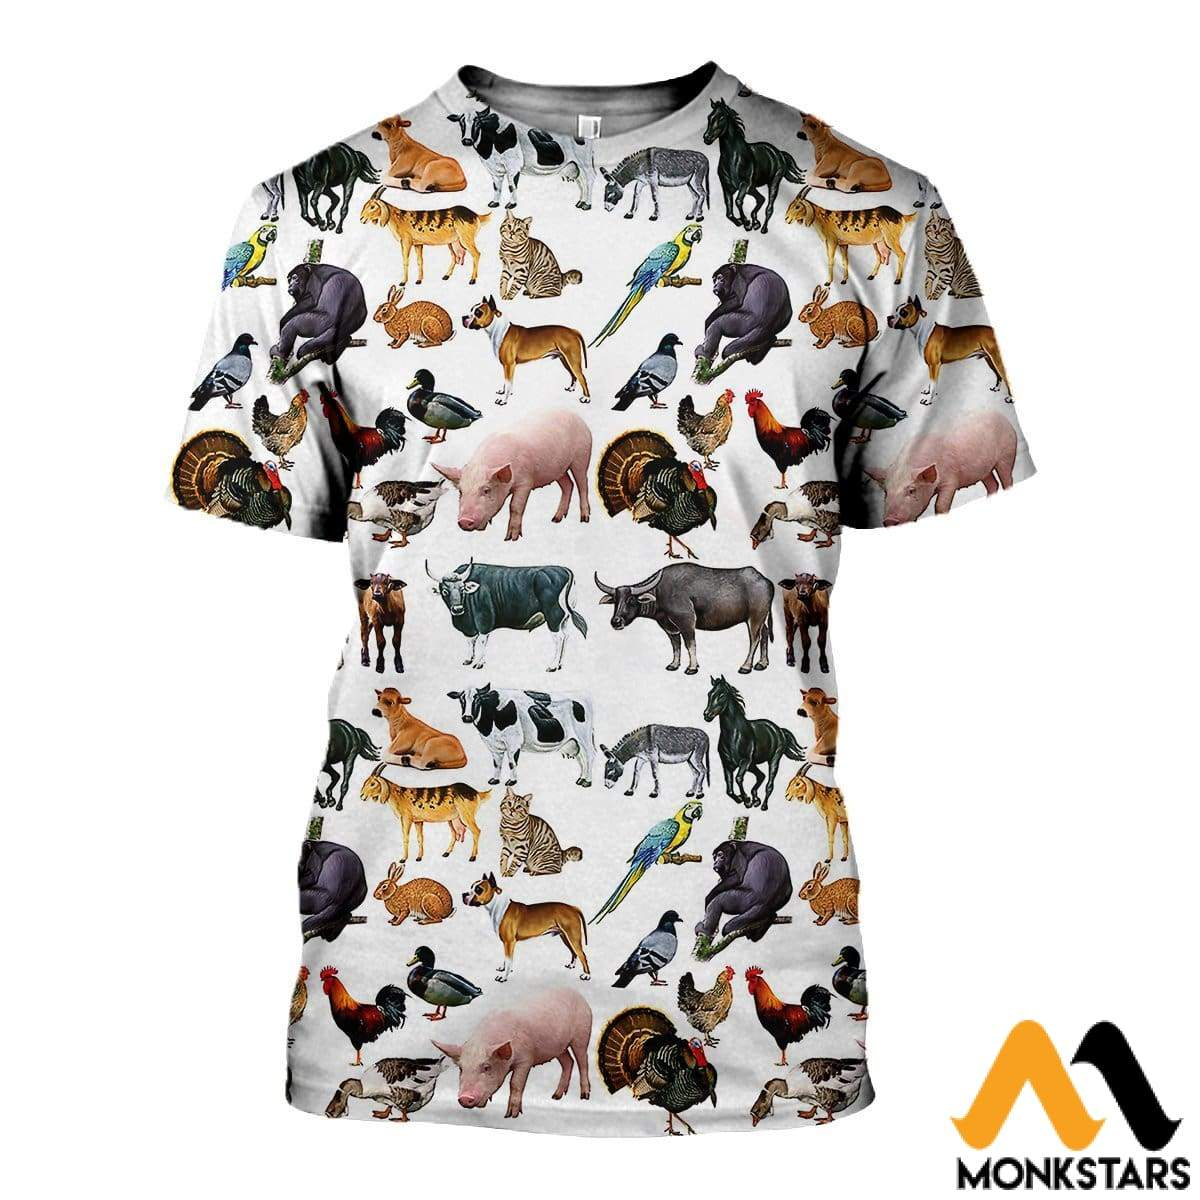 3D All Over Printed Pet Animals Shirts And Shorts T-Shirt / Xs Clothes